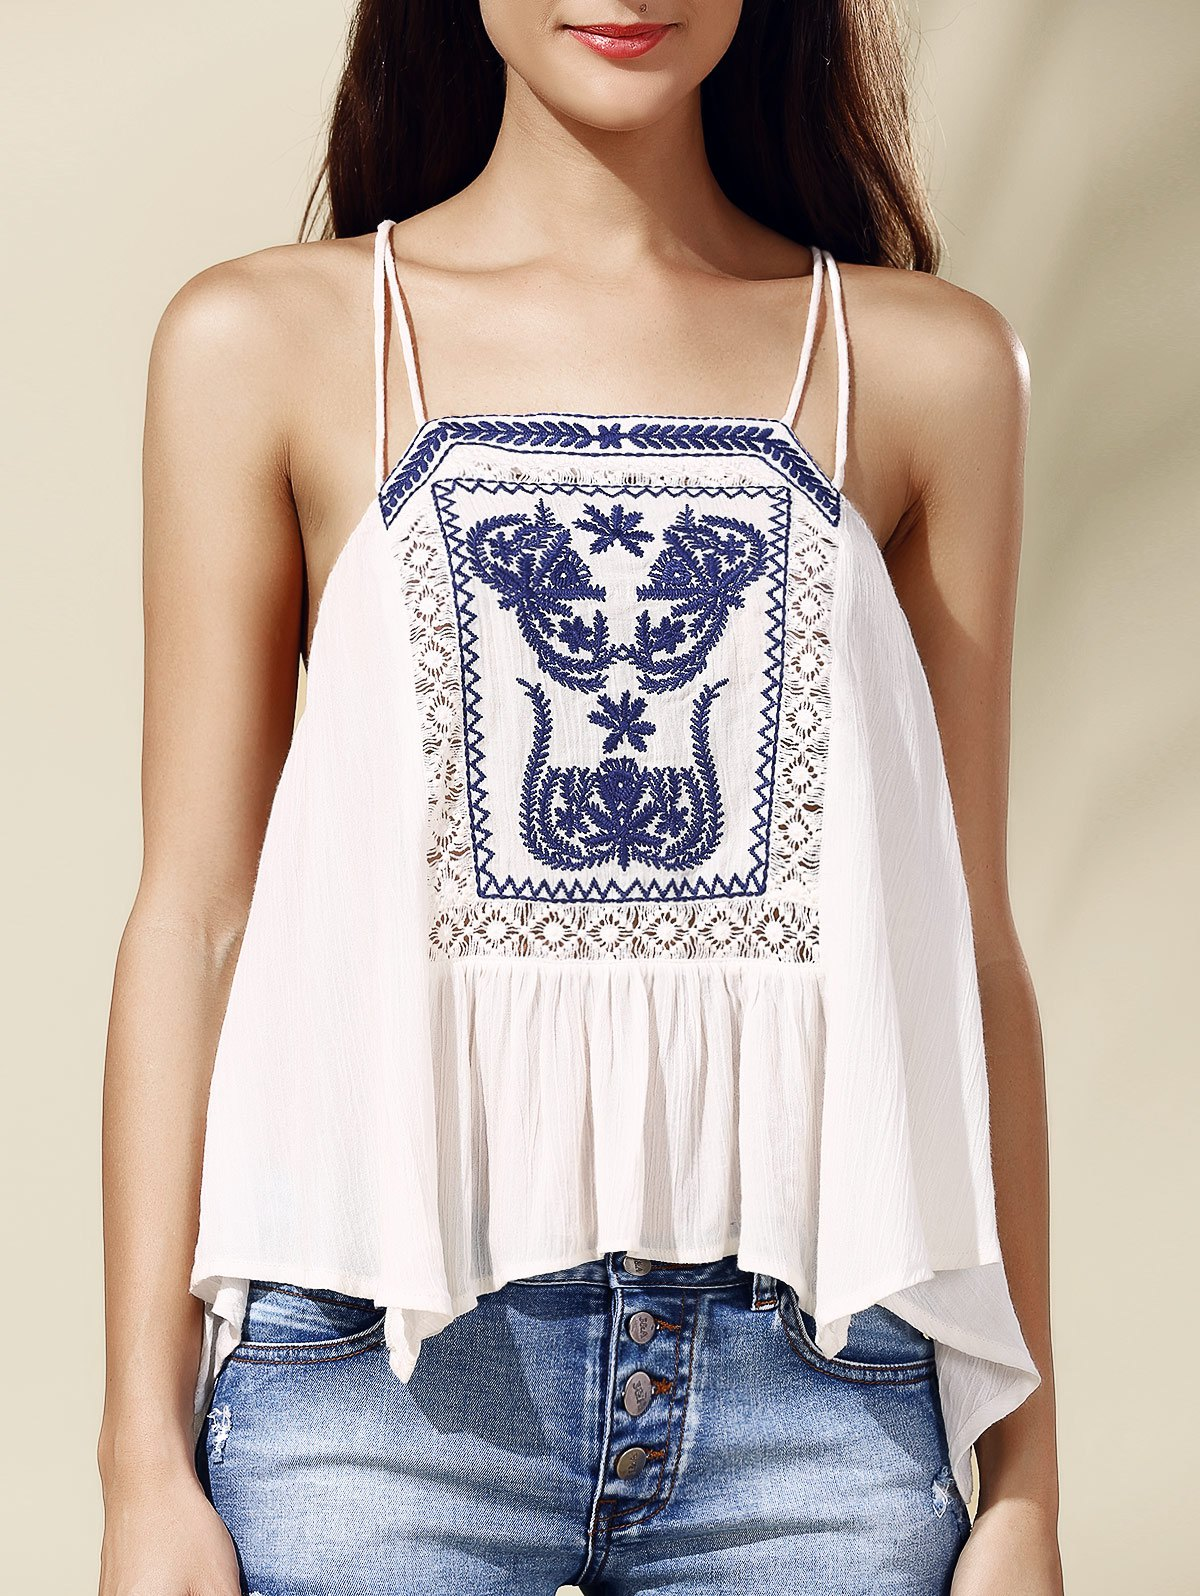 Ethnic Style Women's Spaghetti Strap Embroidered High Low Tank Top - WHITE ONE SIZE(FIT SIZE XS TO M)